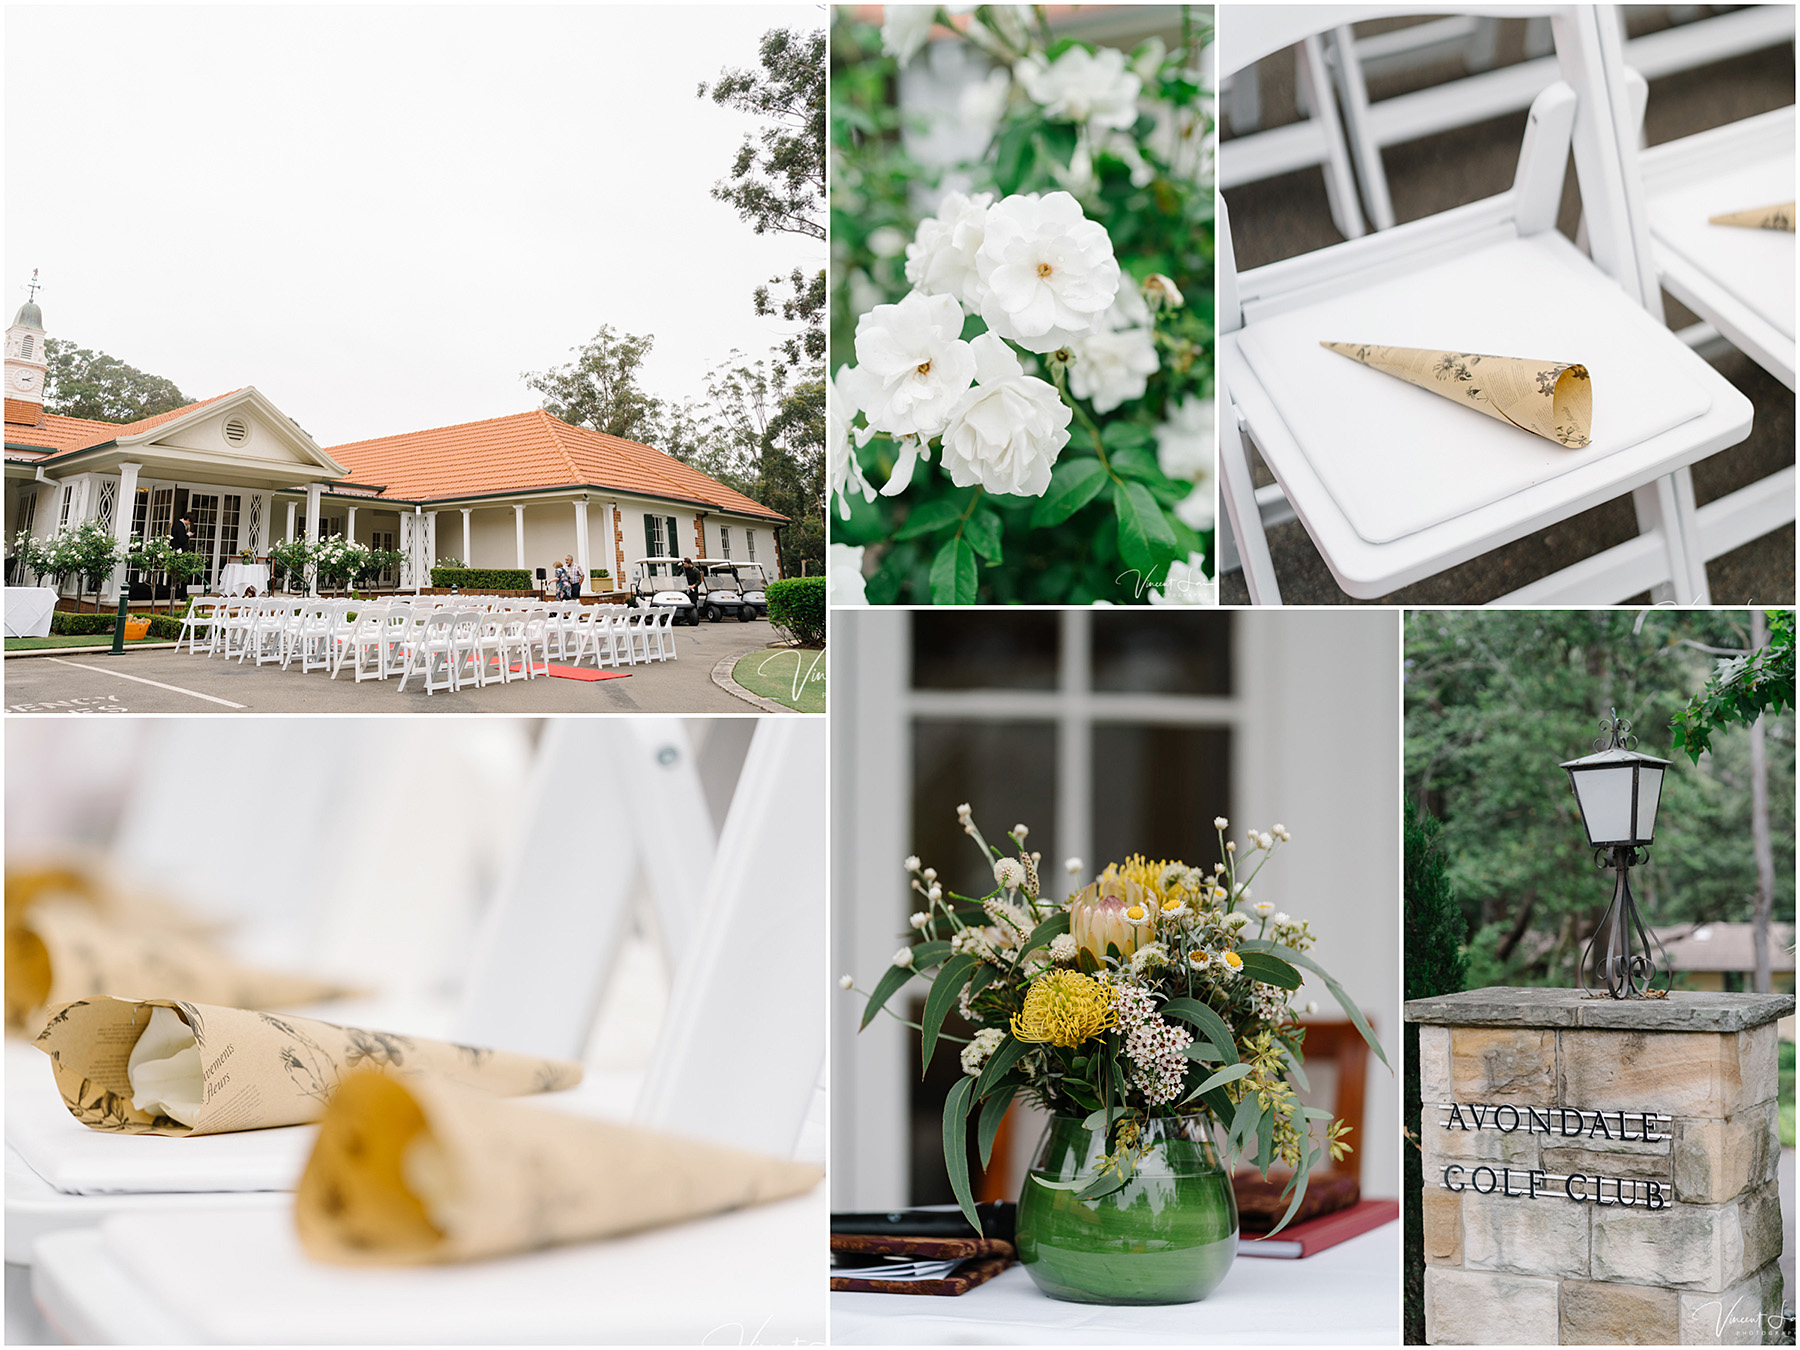 Wedding Ceremony and Reception at Avondale Golf Club